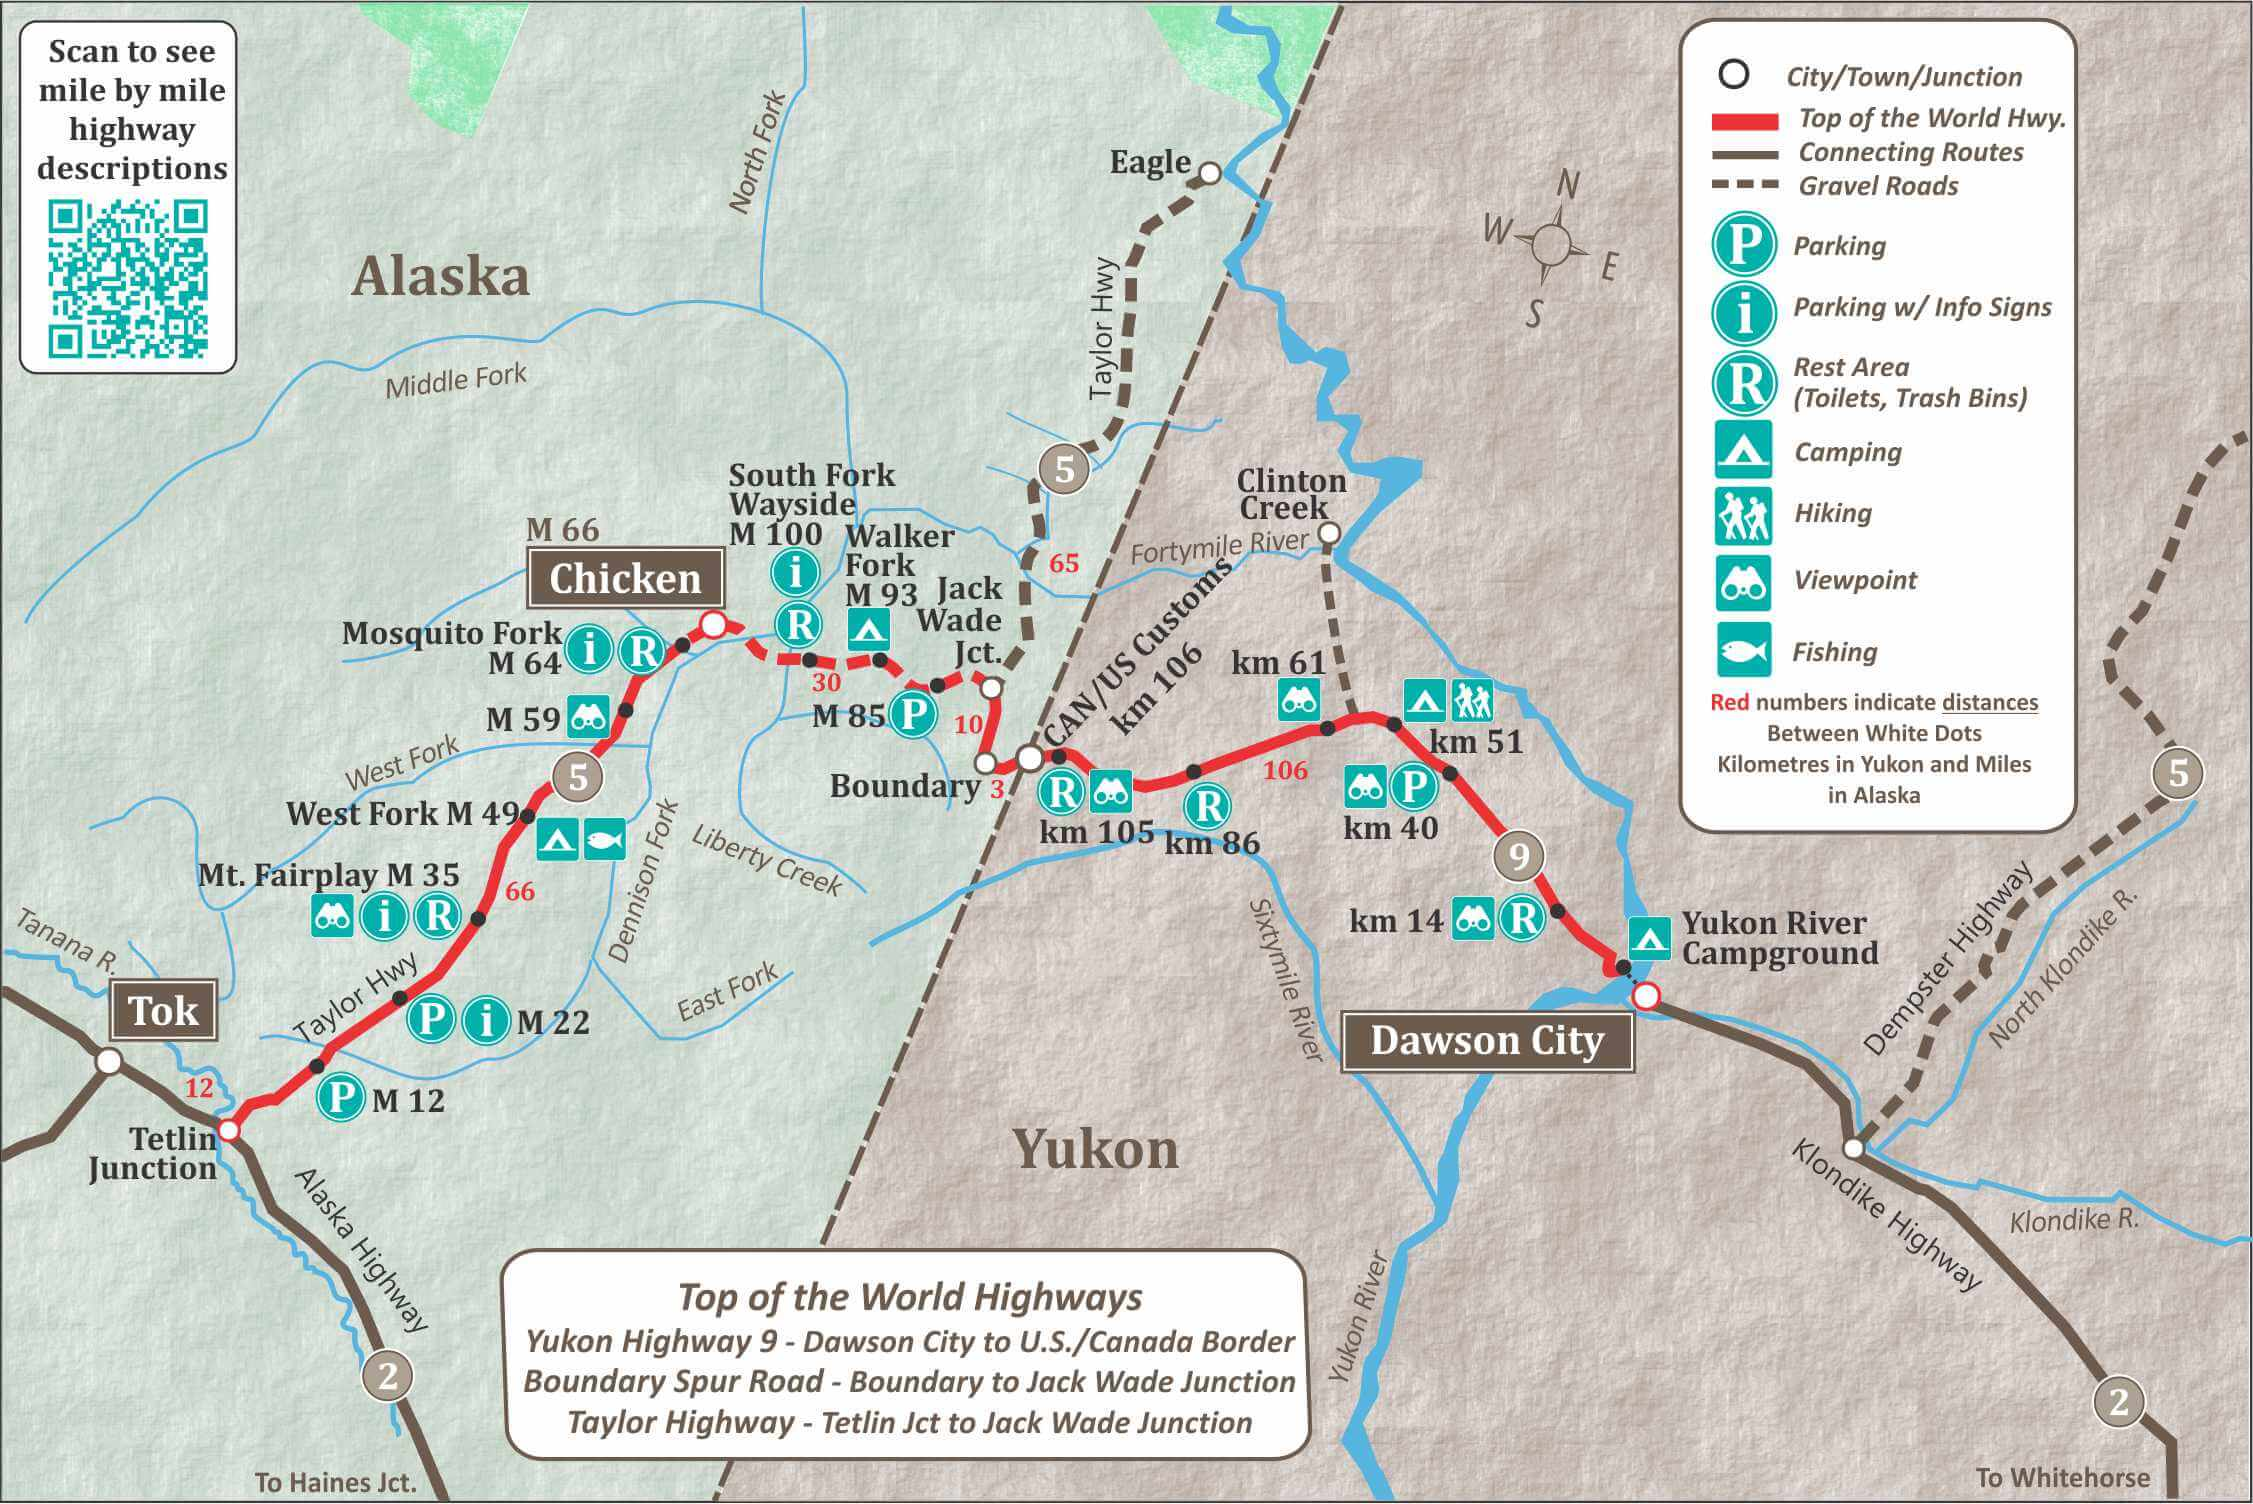 Alaska Maps Of Cities Towns And Highways - Map of us highway rest stops